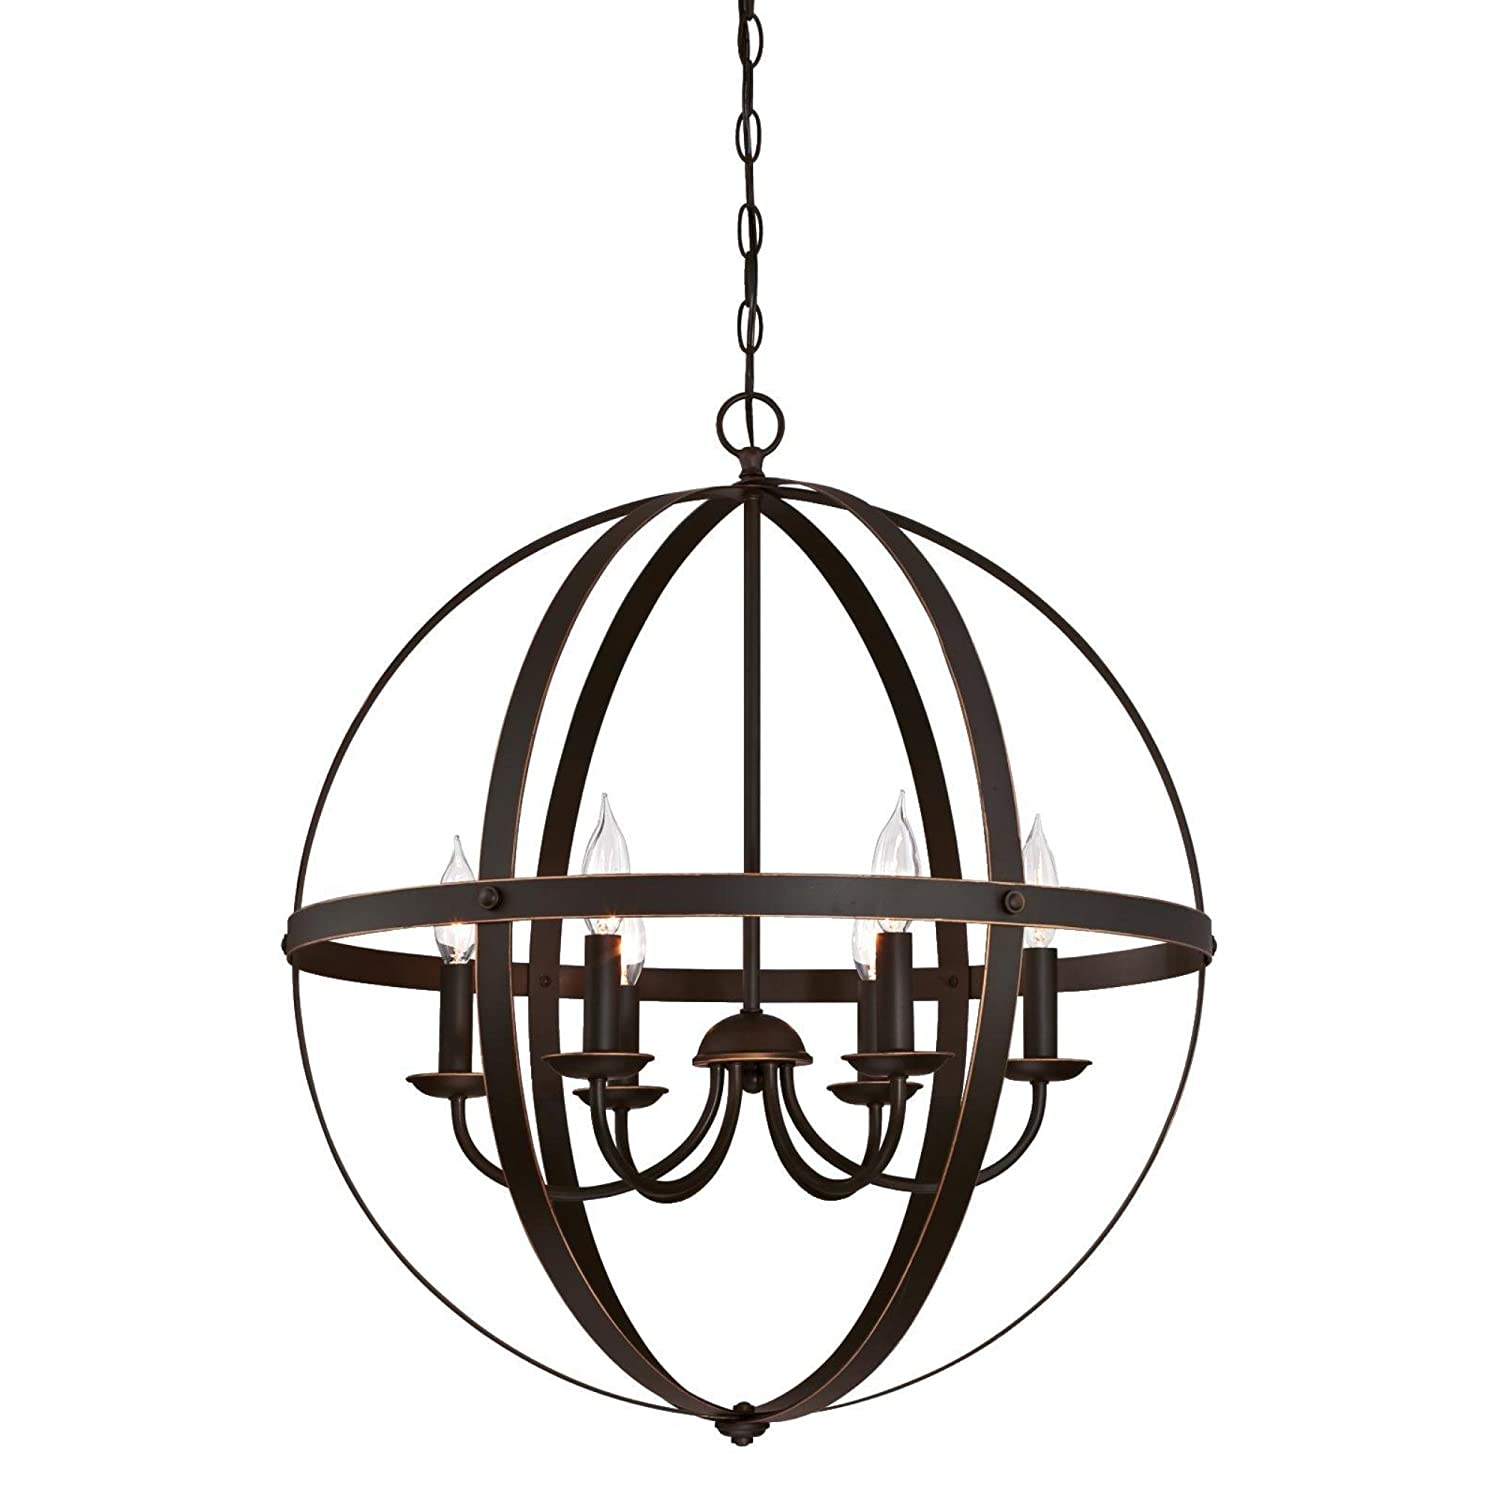 Westinghouse Lighting 6328200 Stella Mira Six-Light Indoor Chandelier, Oil Rubbed Bronze Finish with Highlights, W